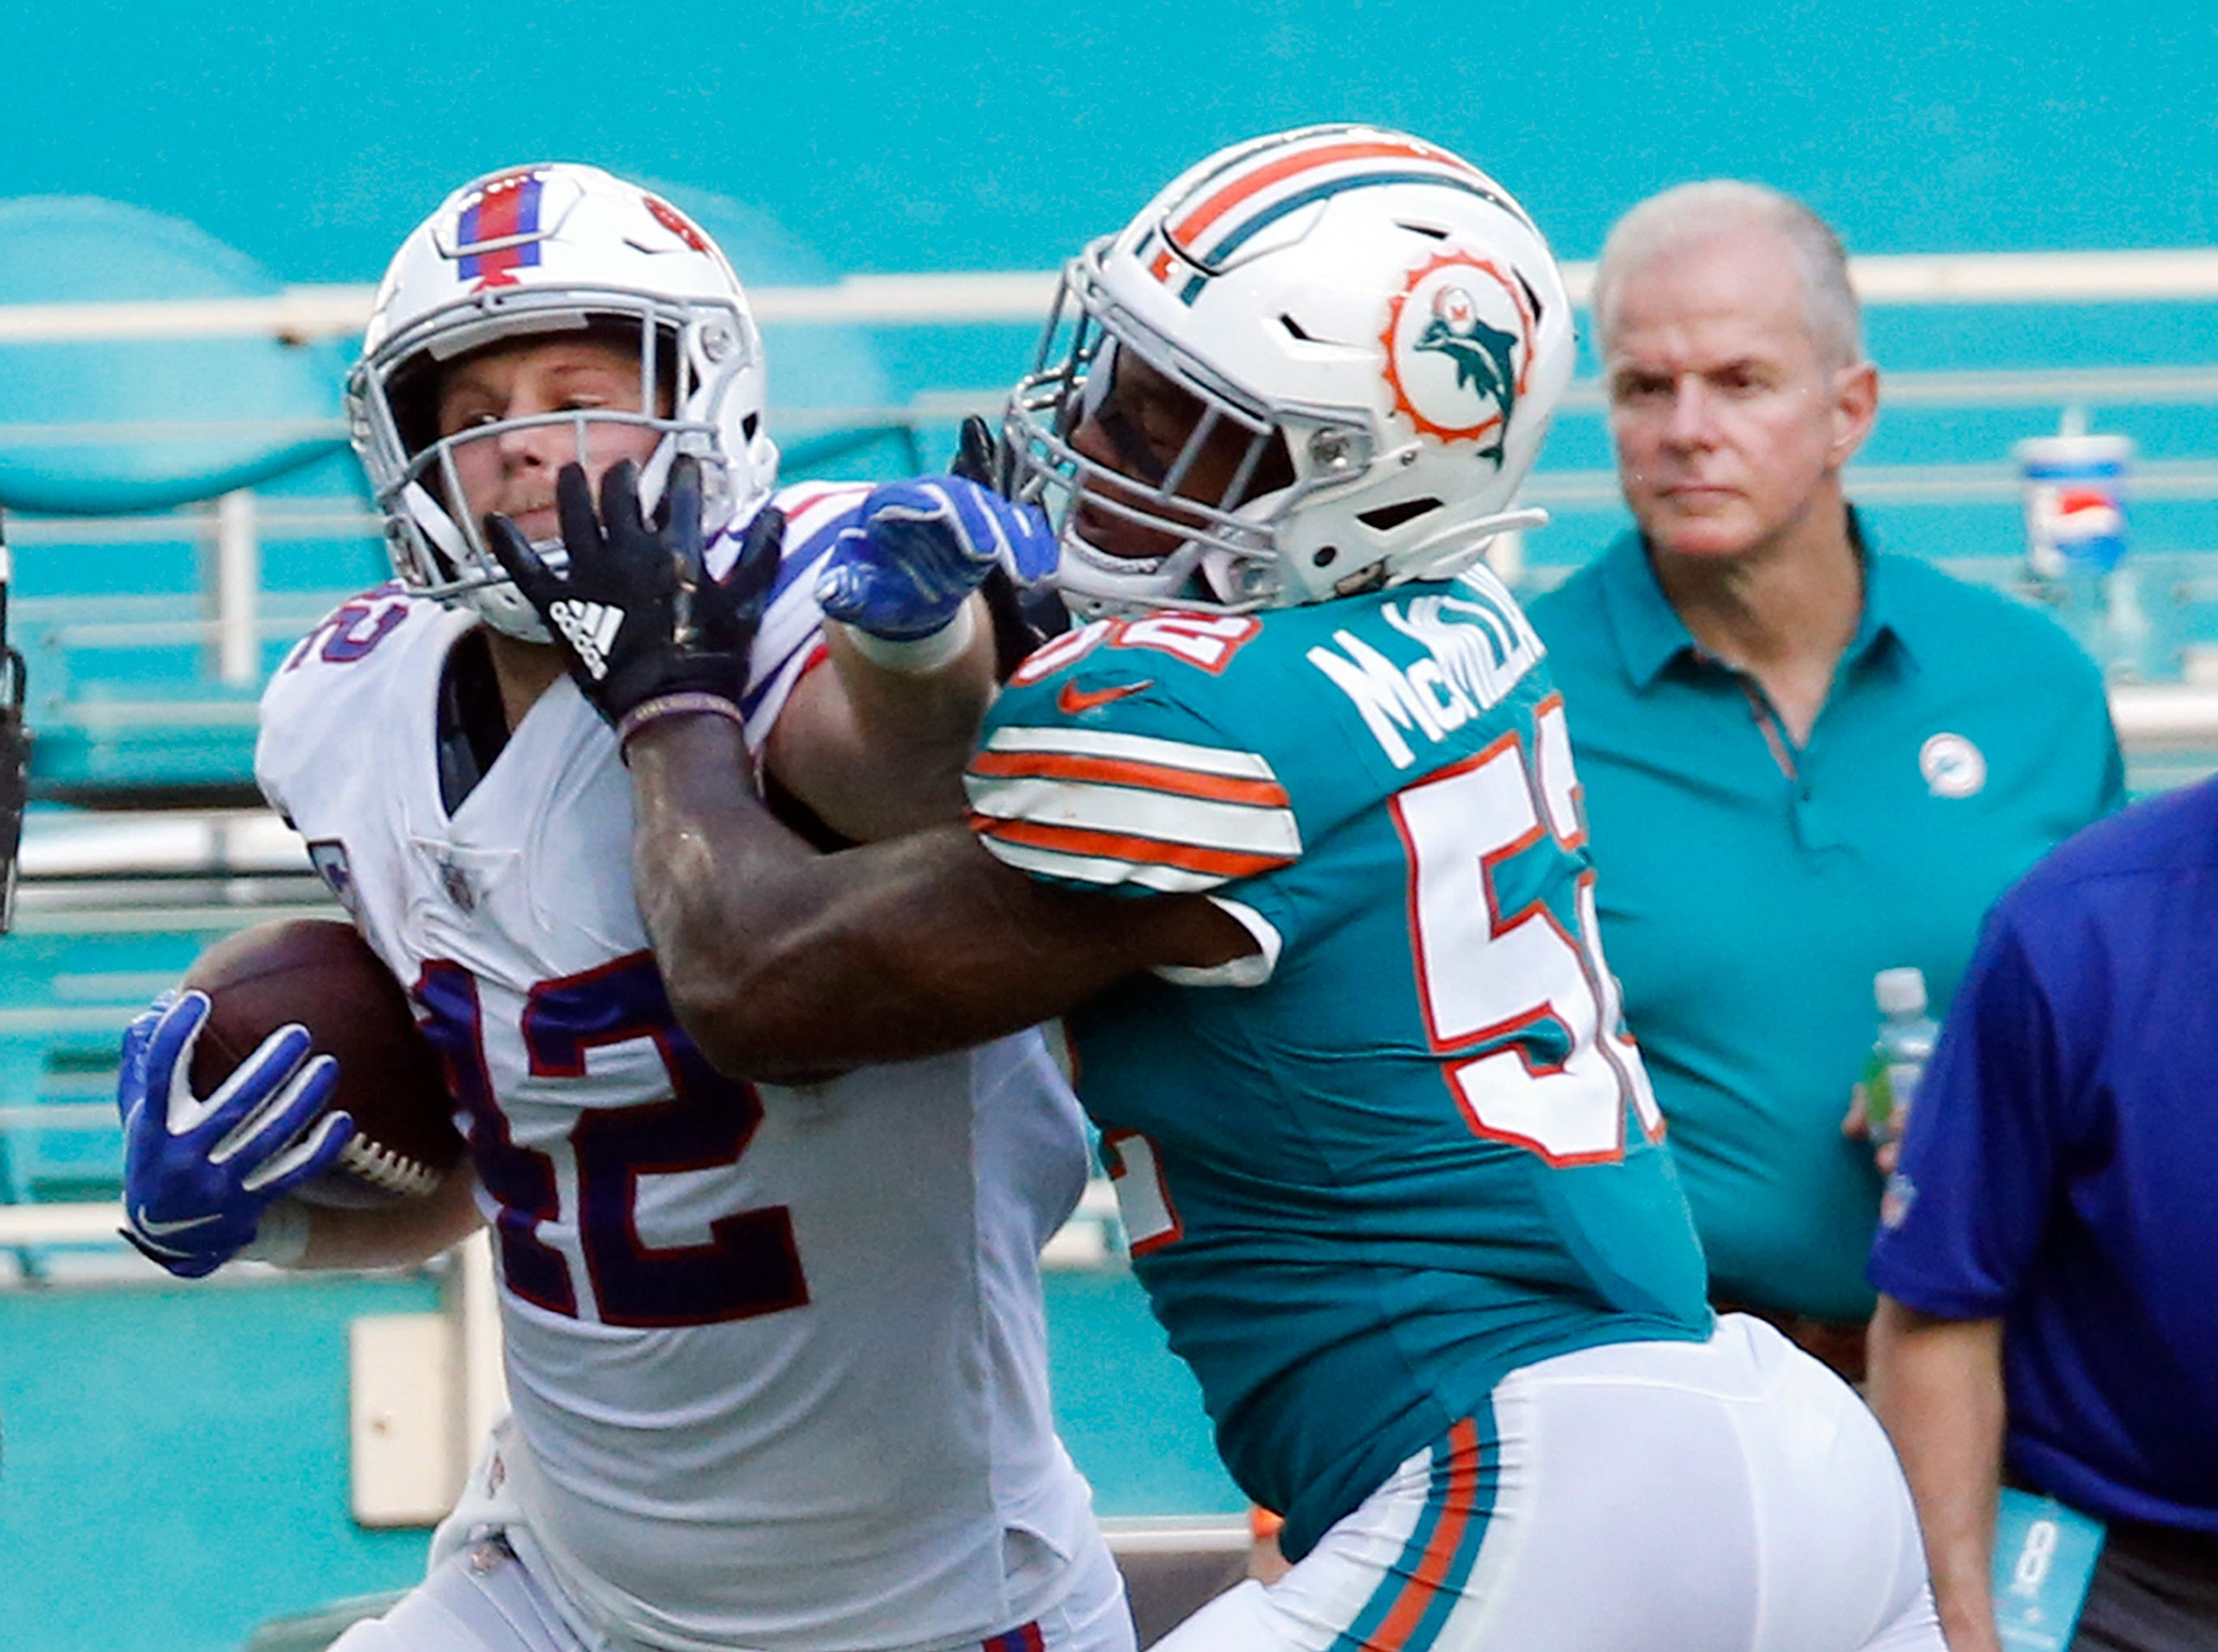 Miami Dolphins middle linebacker Raekwon McMillan (52) grabs Buffalo Bills running back Patrick DiMarco (42), during the second half of an NFL football game, Sunday, Dec. 2, 2018, in Miami Gardens, Fla. (AP Photo/Joel Auerbach)